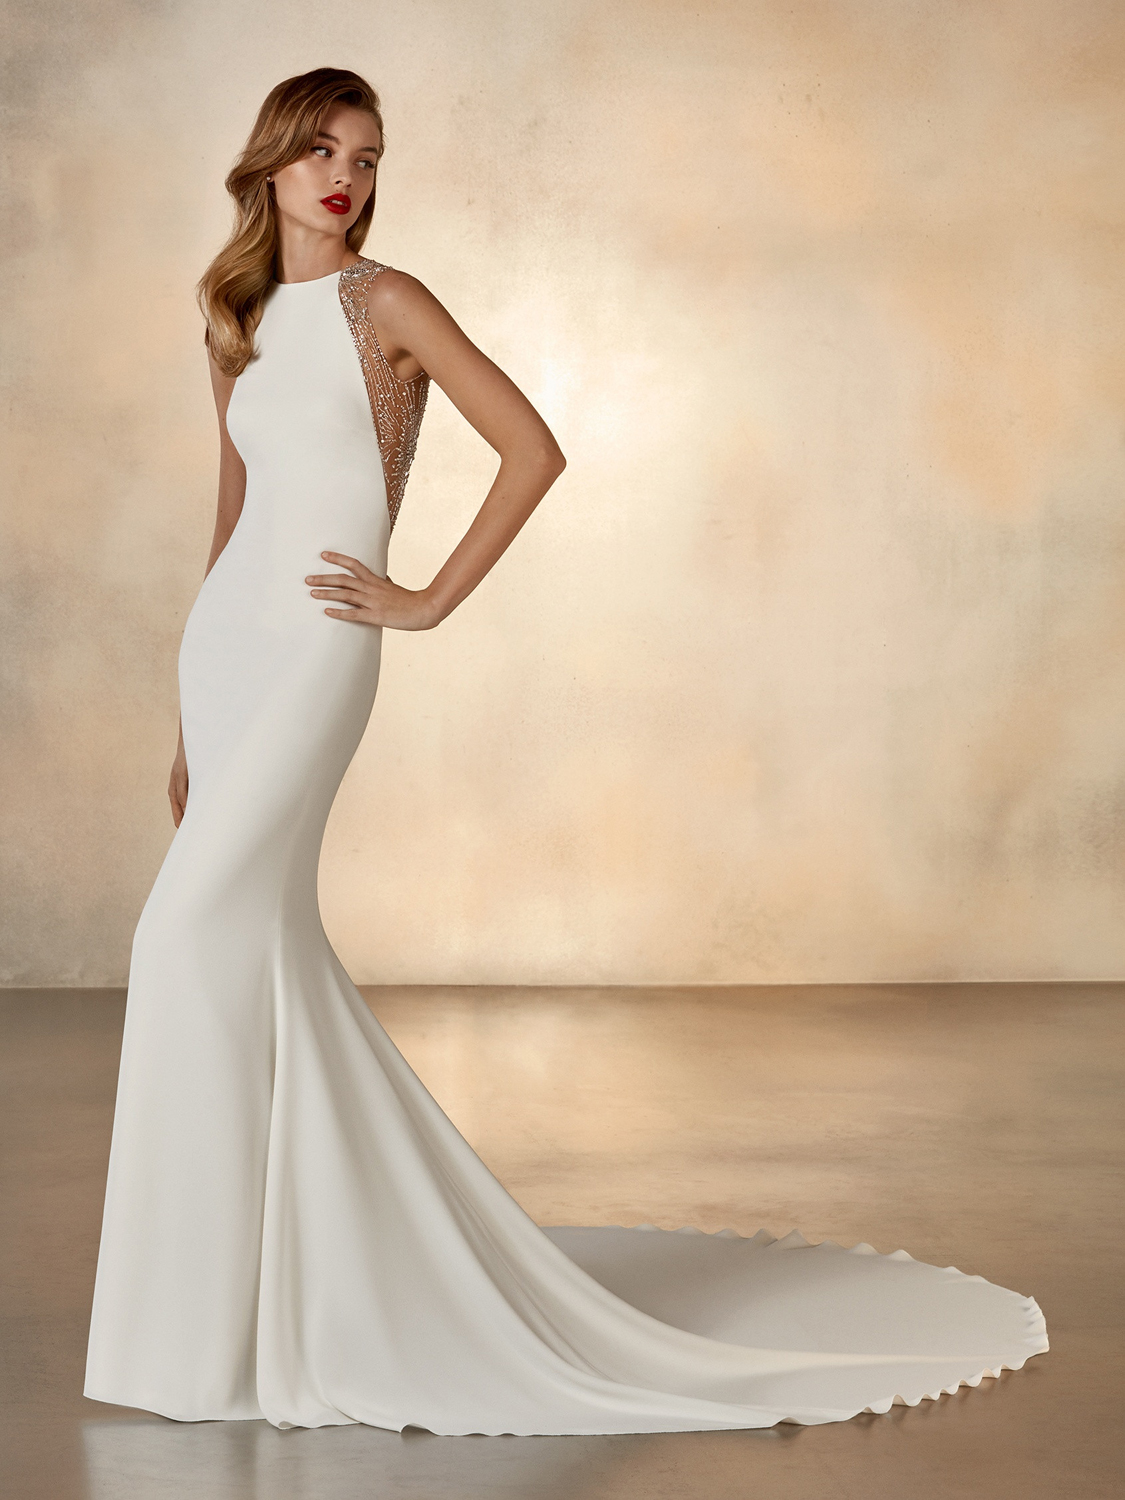 Atelier_Pronovias_2020_collection_wedding_dress__Galaxy_front_view.jpg